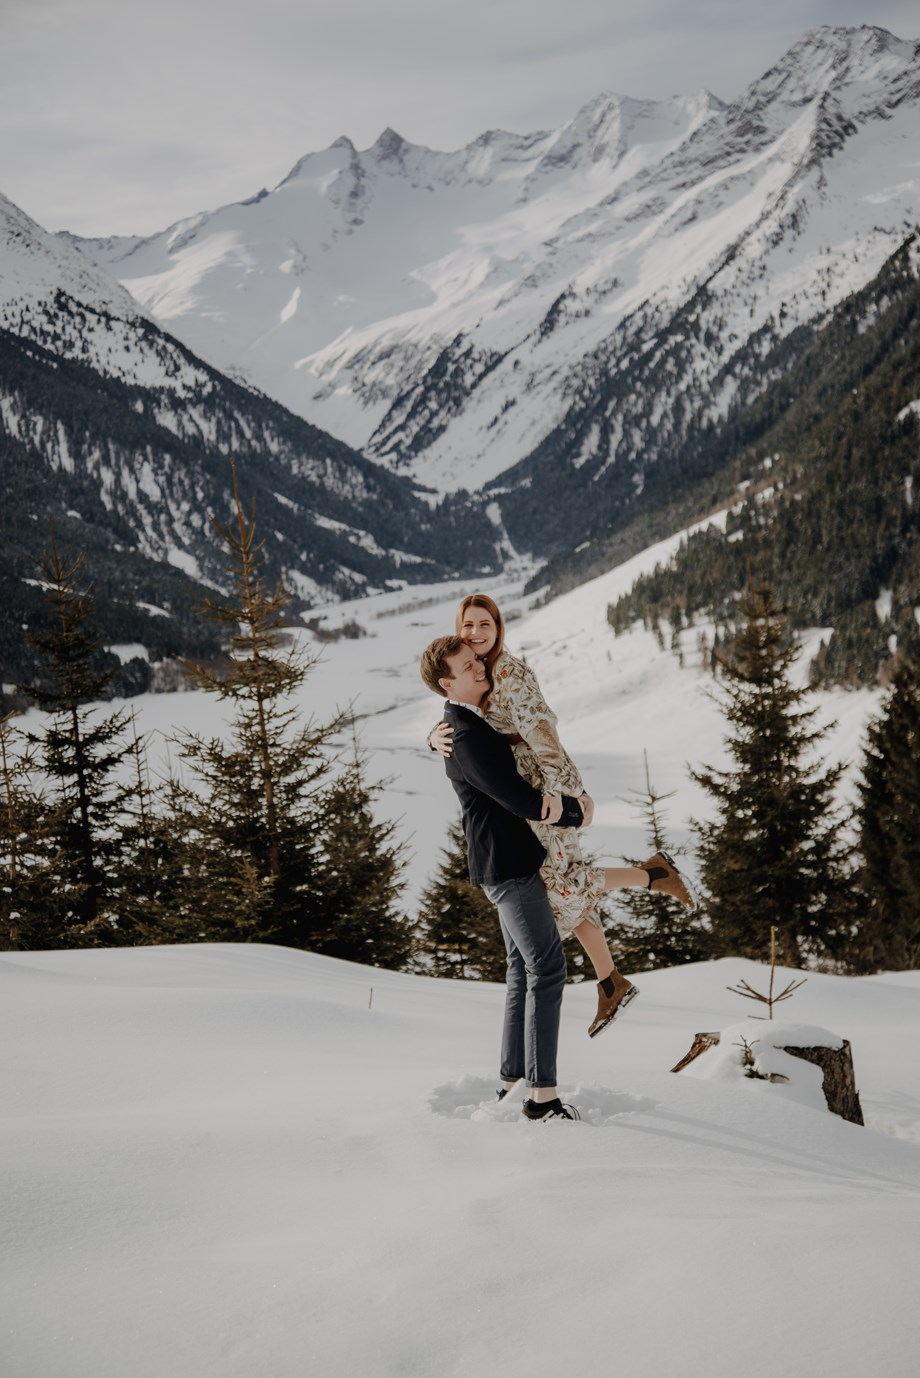 Hochzeitsfotograf: TWO MOUNTAIN HEARTS